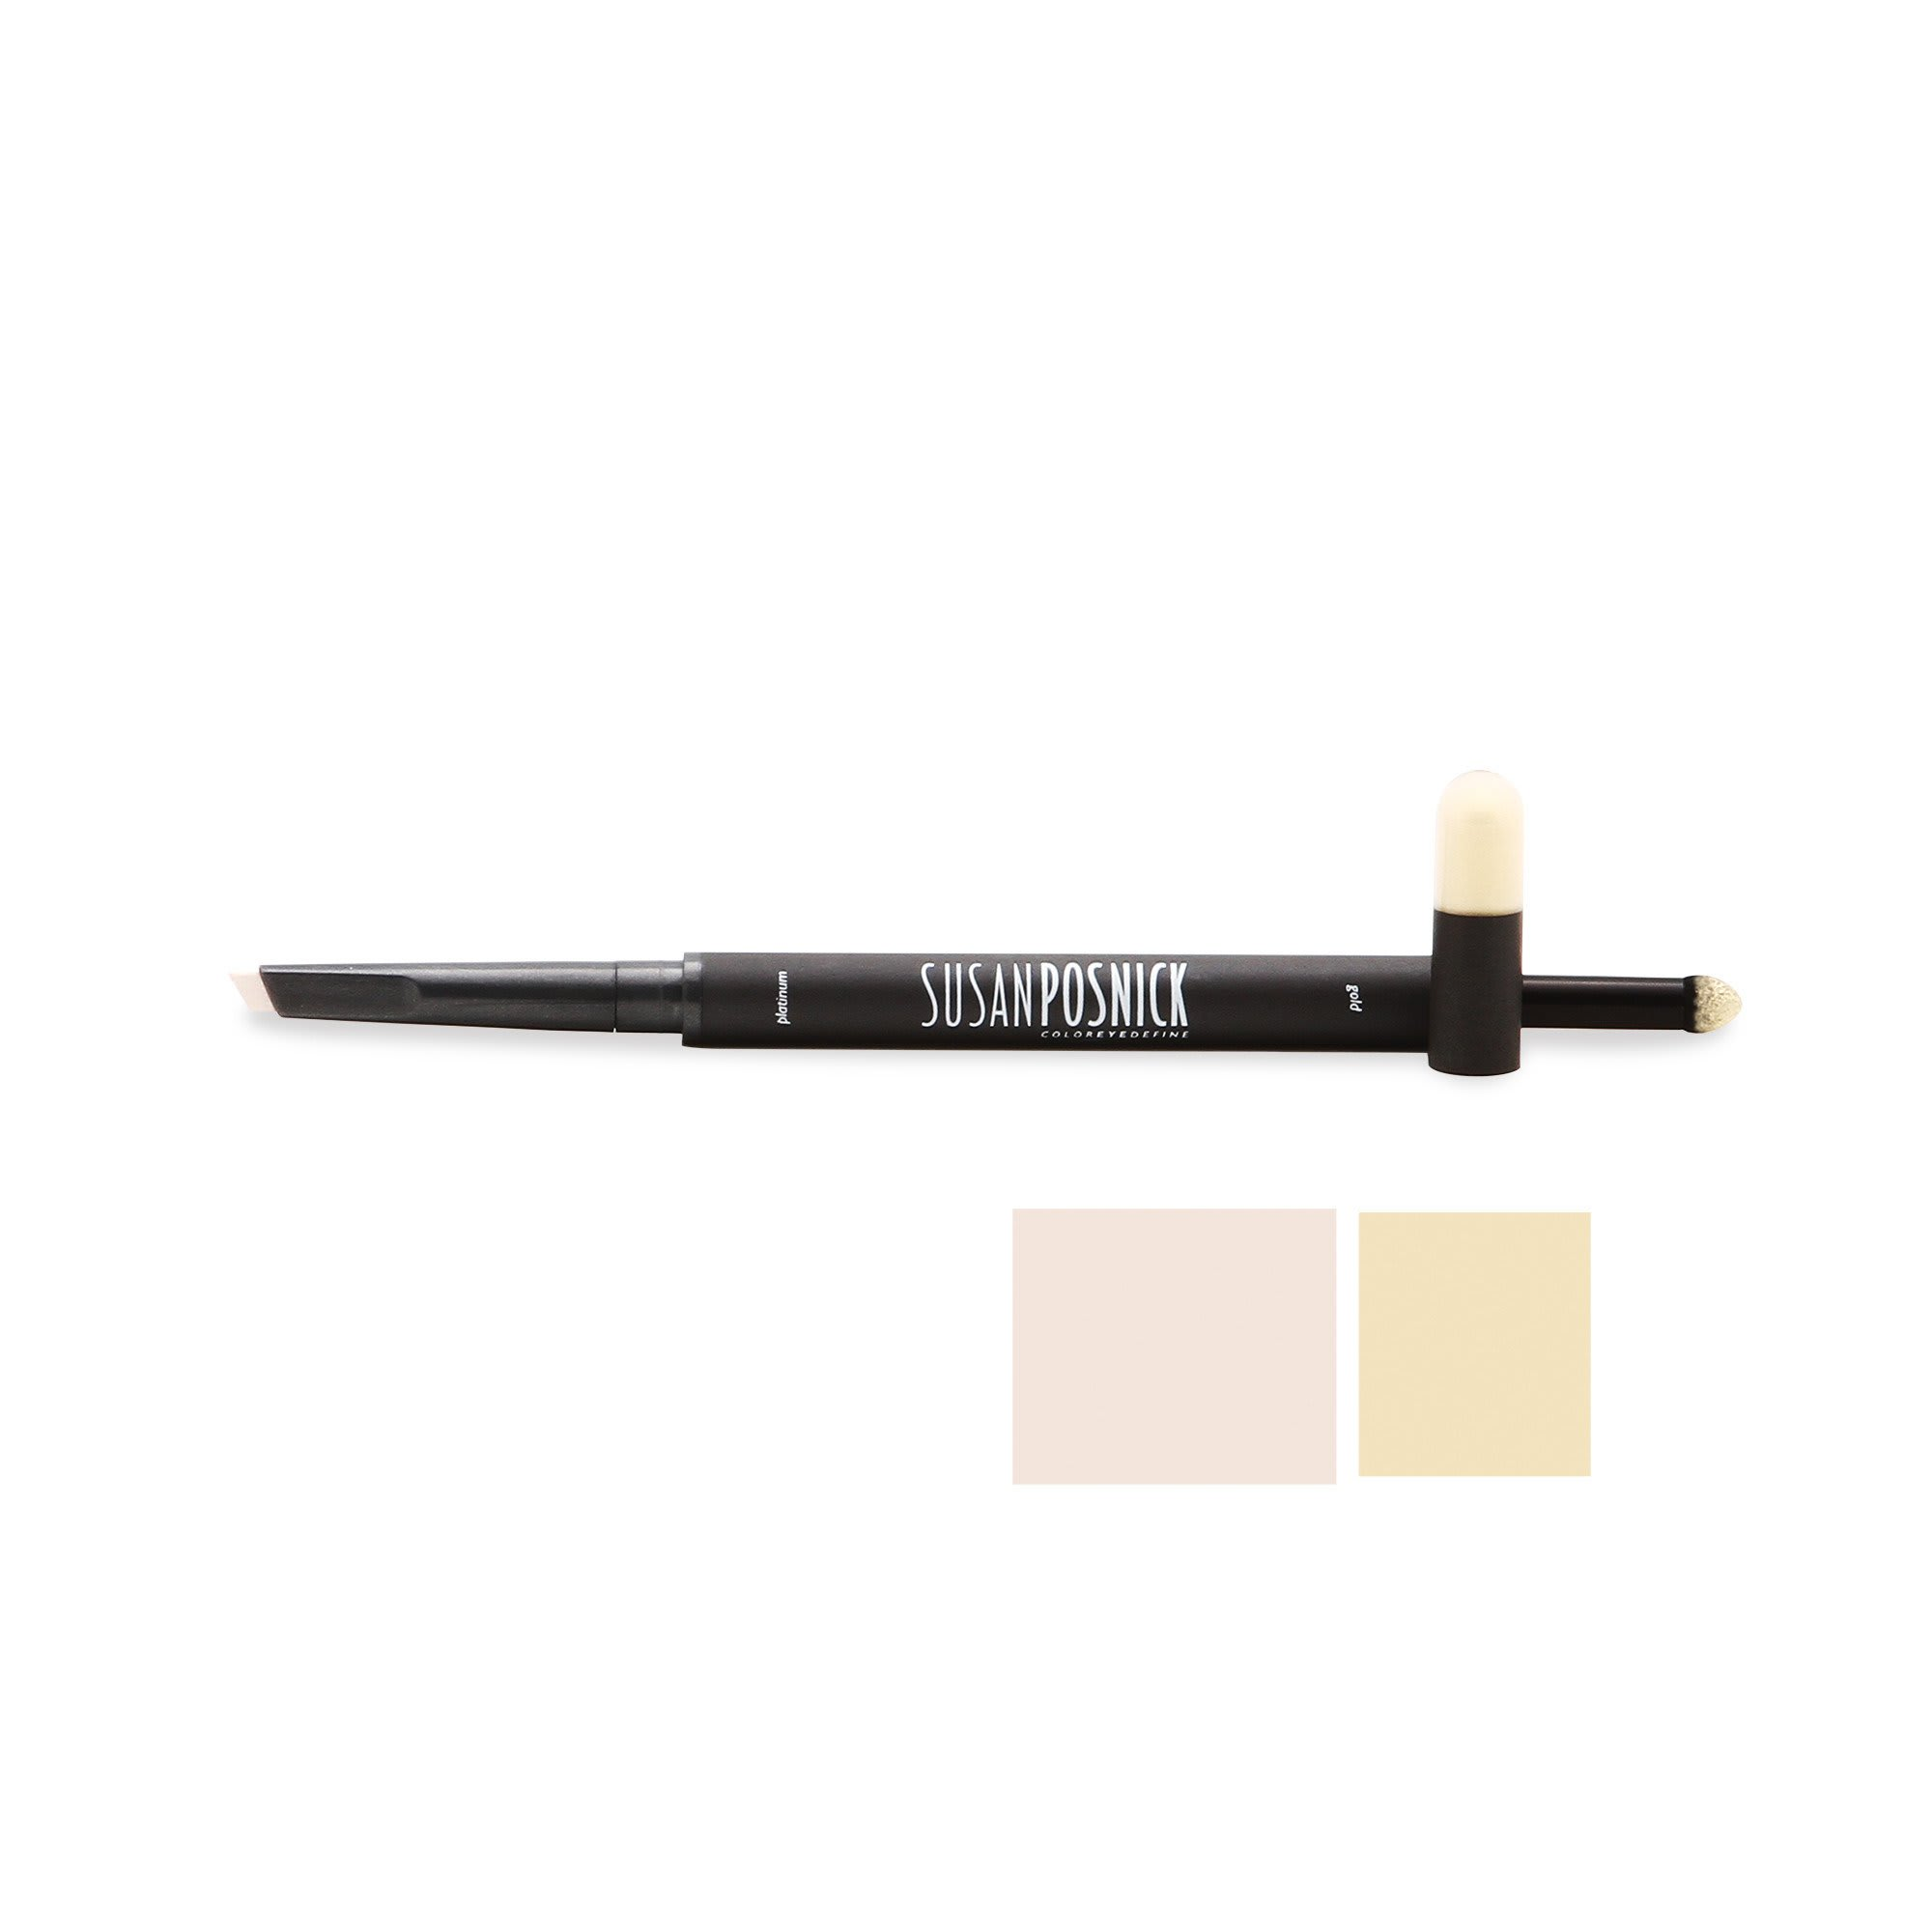 Susan Posnick Cosmetics Coloreyedefine Platinum / Gold